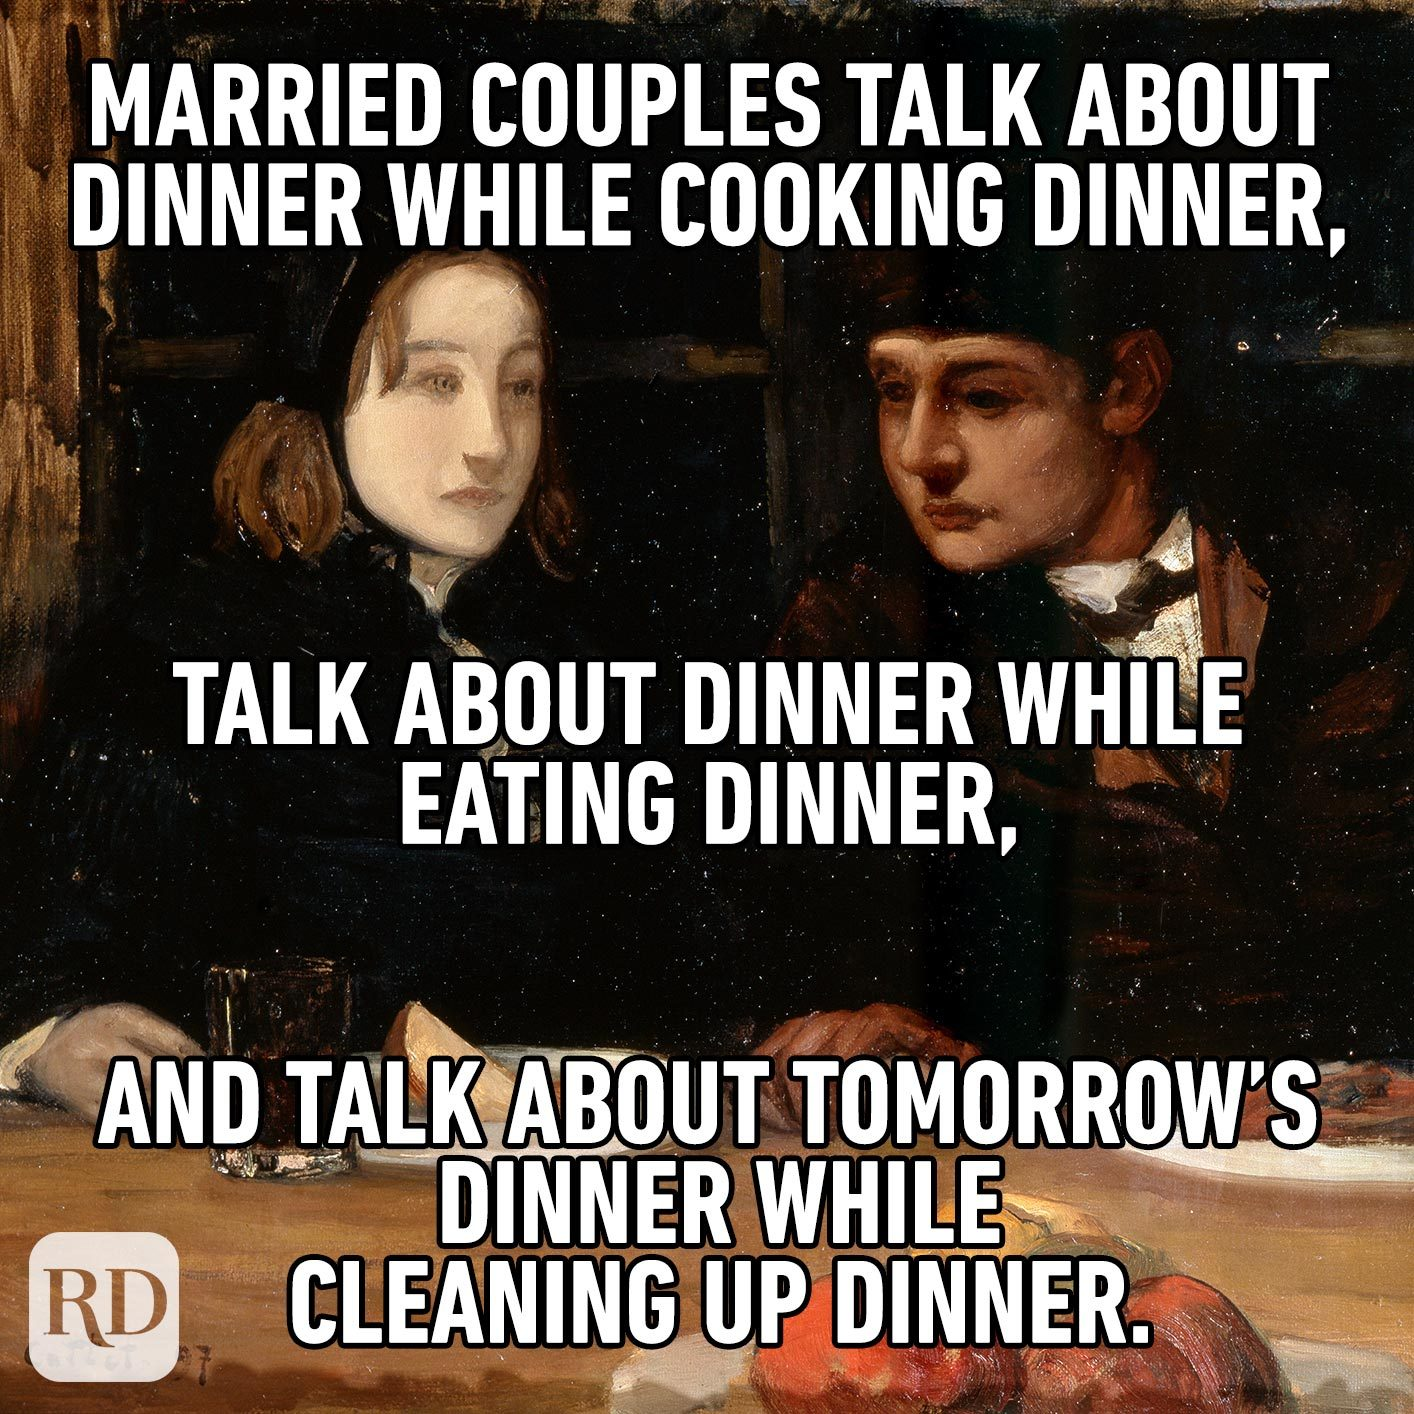 Two people in an old painting staring at empty plates. Meme text: Married couples talk about dinner while cooking dinner, talk about dinner while eating dinner, and talk about tomorrow's dinner while cleaning up dinner.